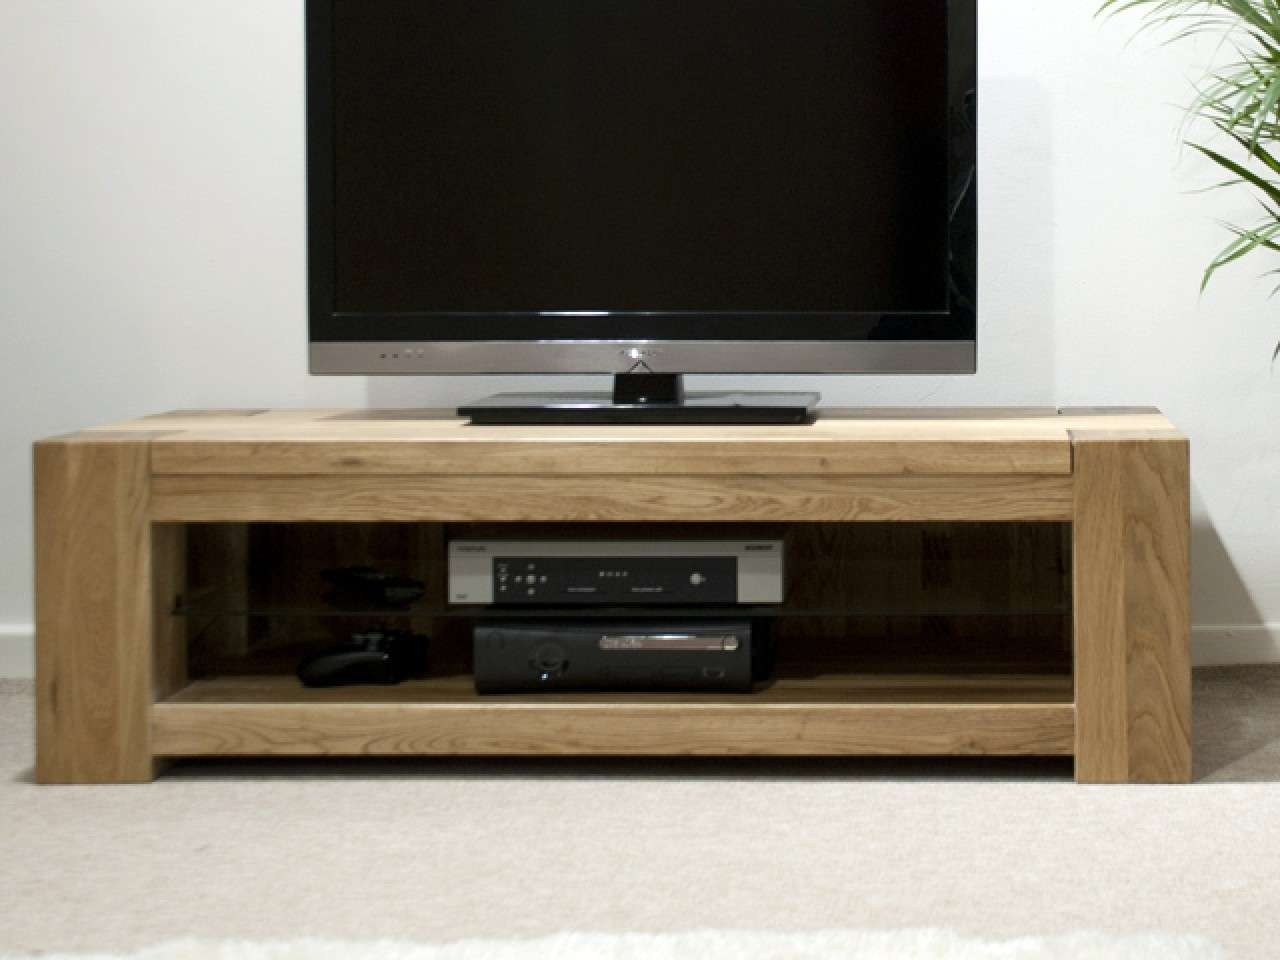 Innovative Designs Oak Tv Console | Marku Home Design With Oak Tv Cabinets For Flat Screens (View 6 of 20)